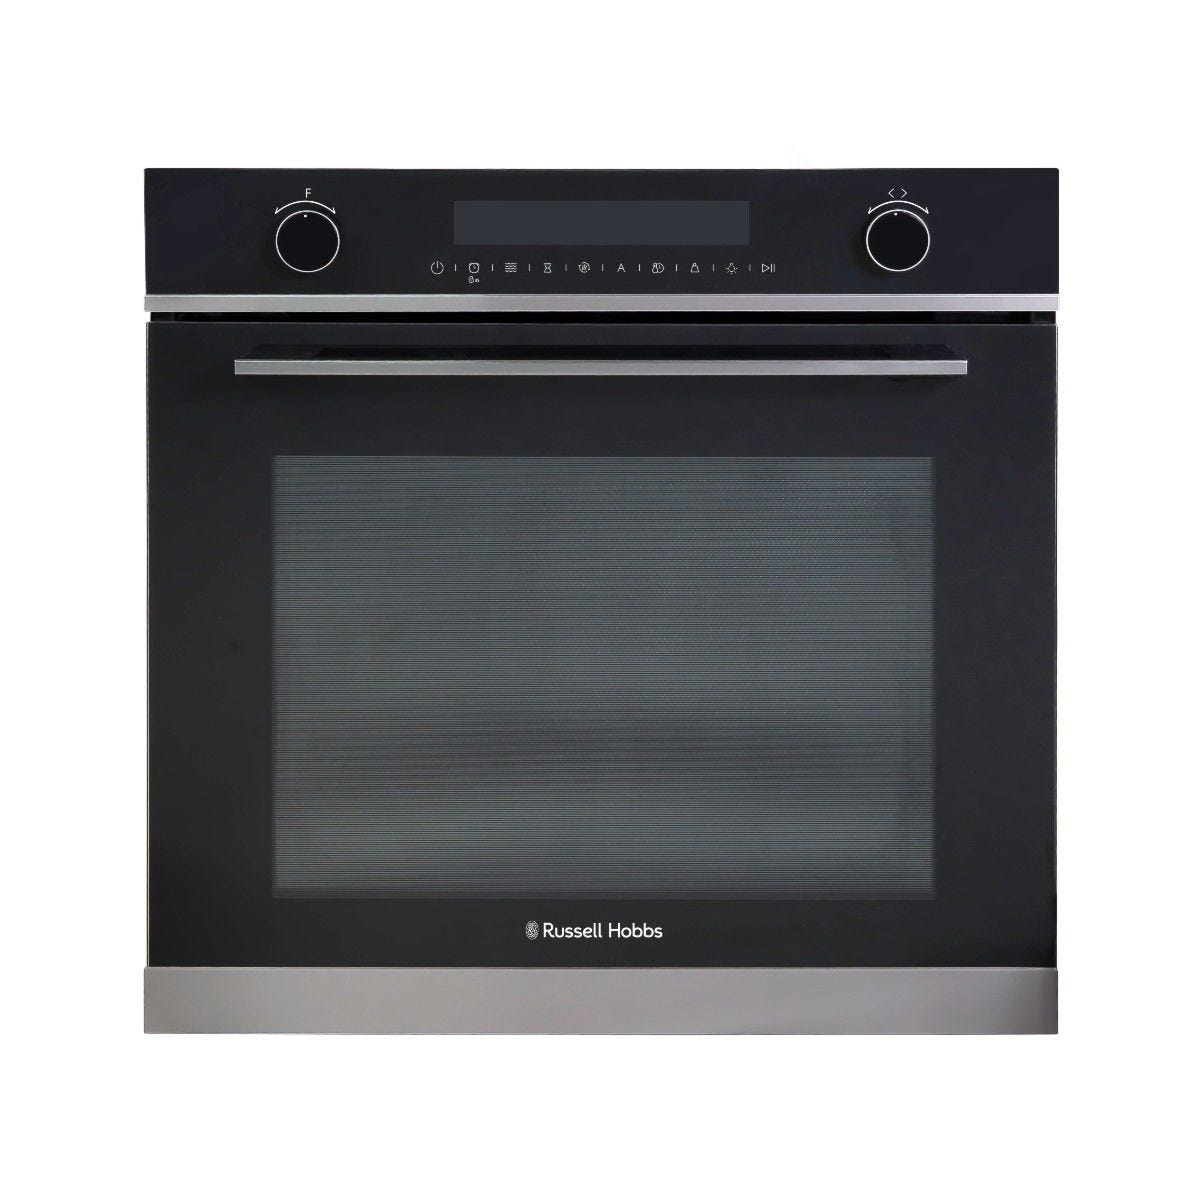 Russell Hobbs RHMEO7202DS Midnight Collection 72L Multifunctional Electric Fan Oven & Microwave - Black